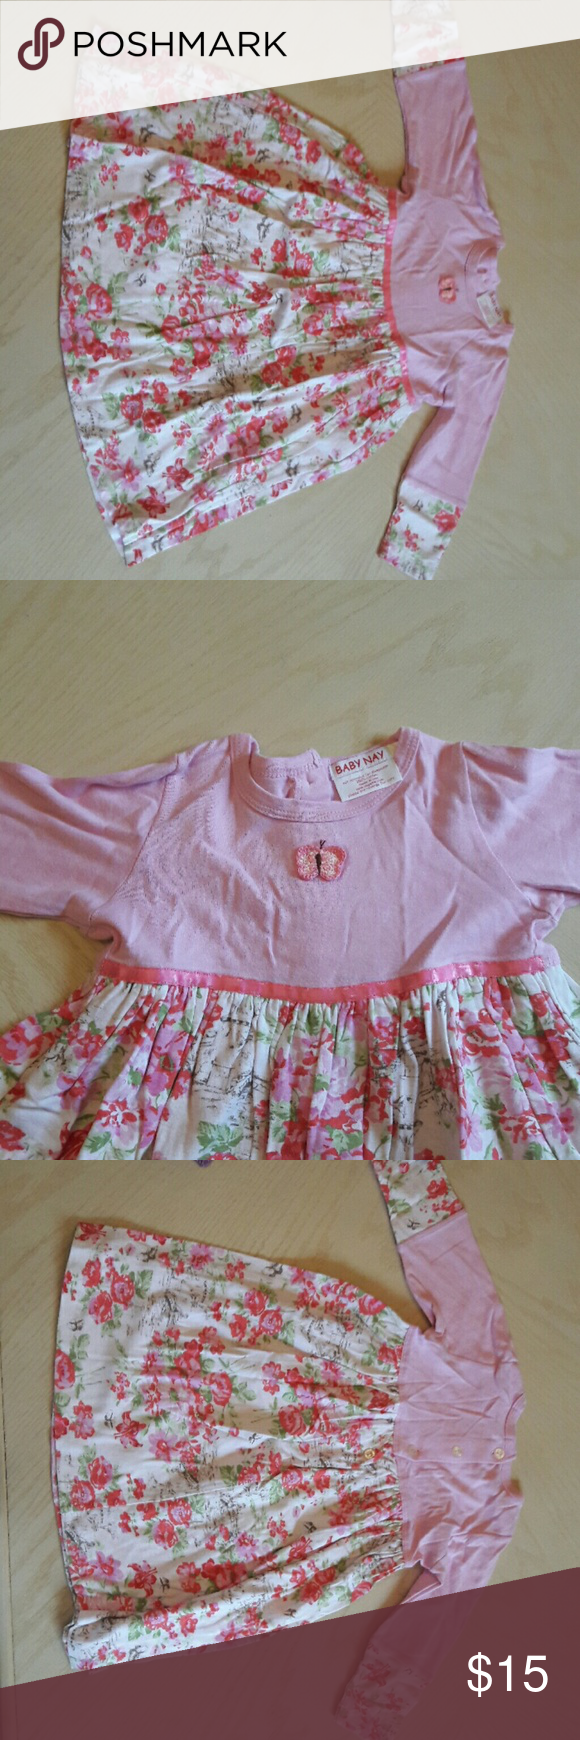 BABY NAY pink dress This adorable dress is perfect for the little girl in your life. It is 100% cotton and has a very cute floral pattern. The butterfly on the top half makes it that much cuter! Baby Nay Dresses Casual